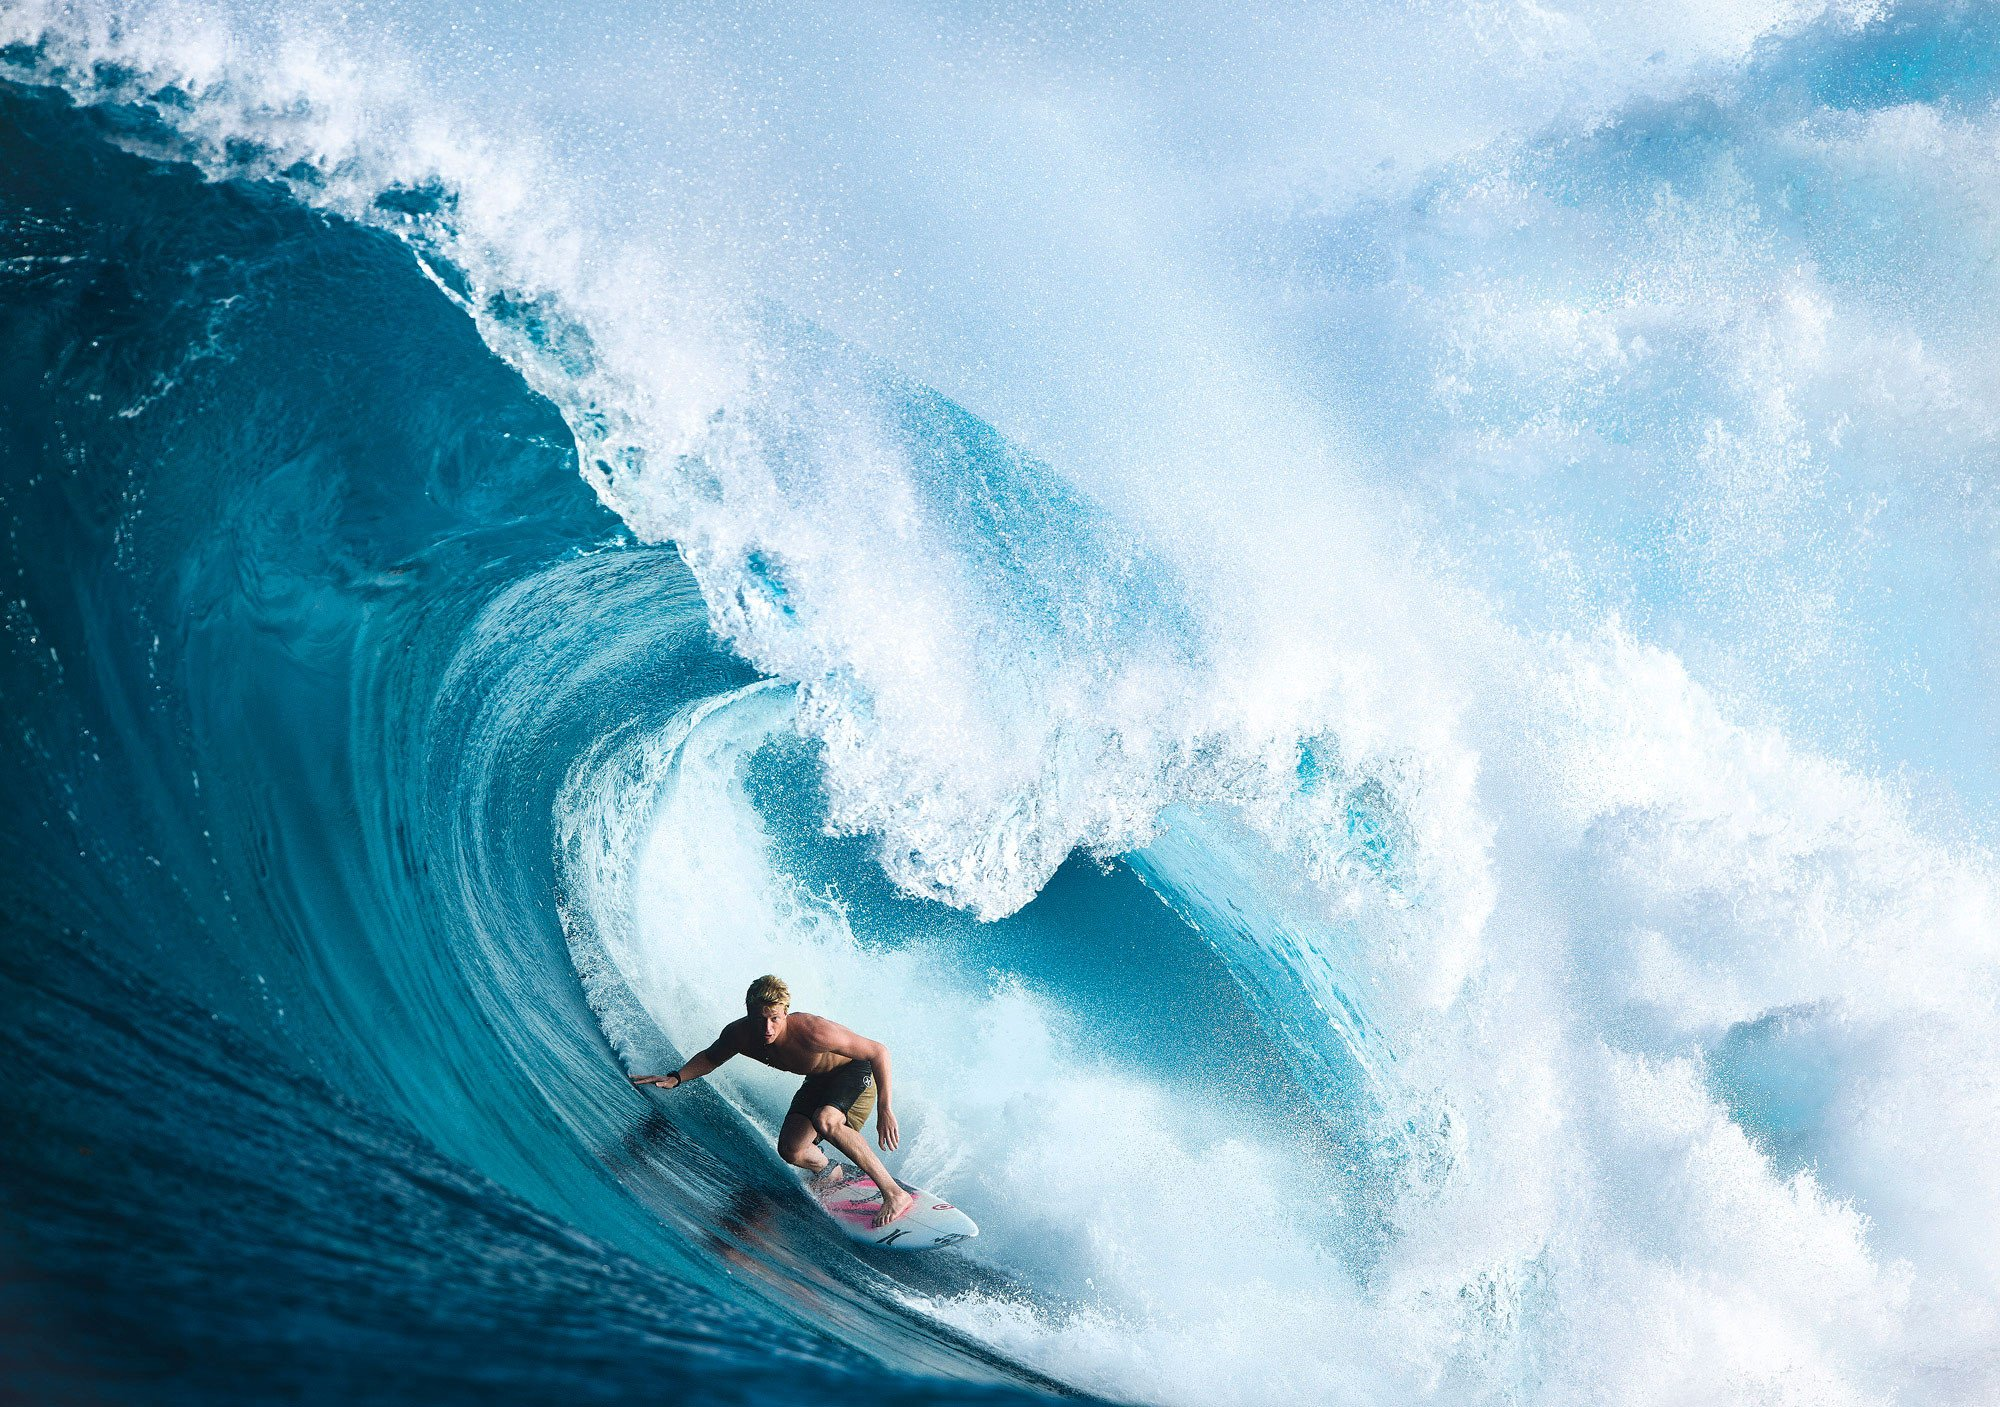 82 Hd Surf Wallpapers on WallpaperPlay 2000x1407